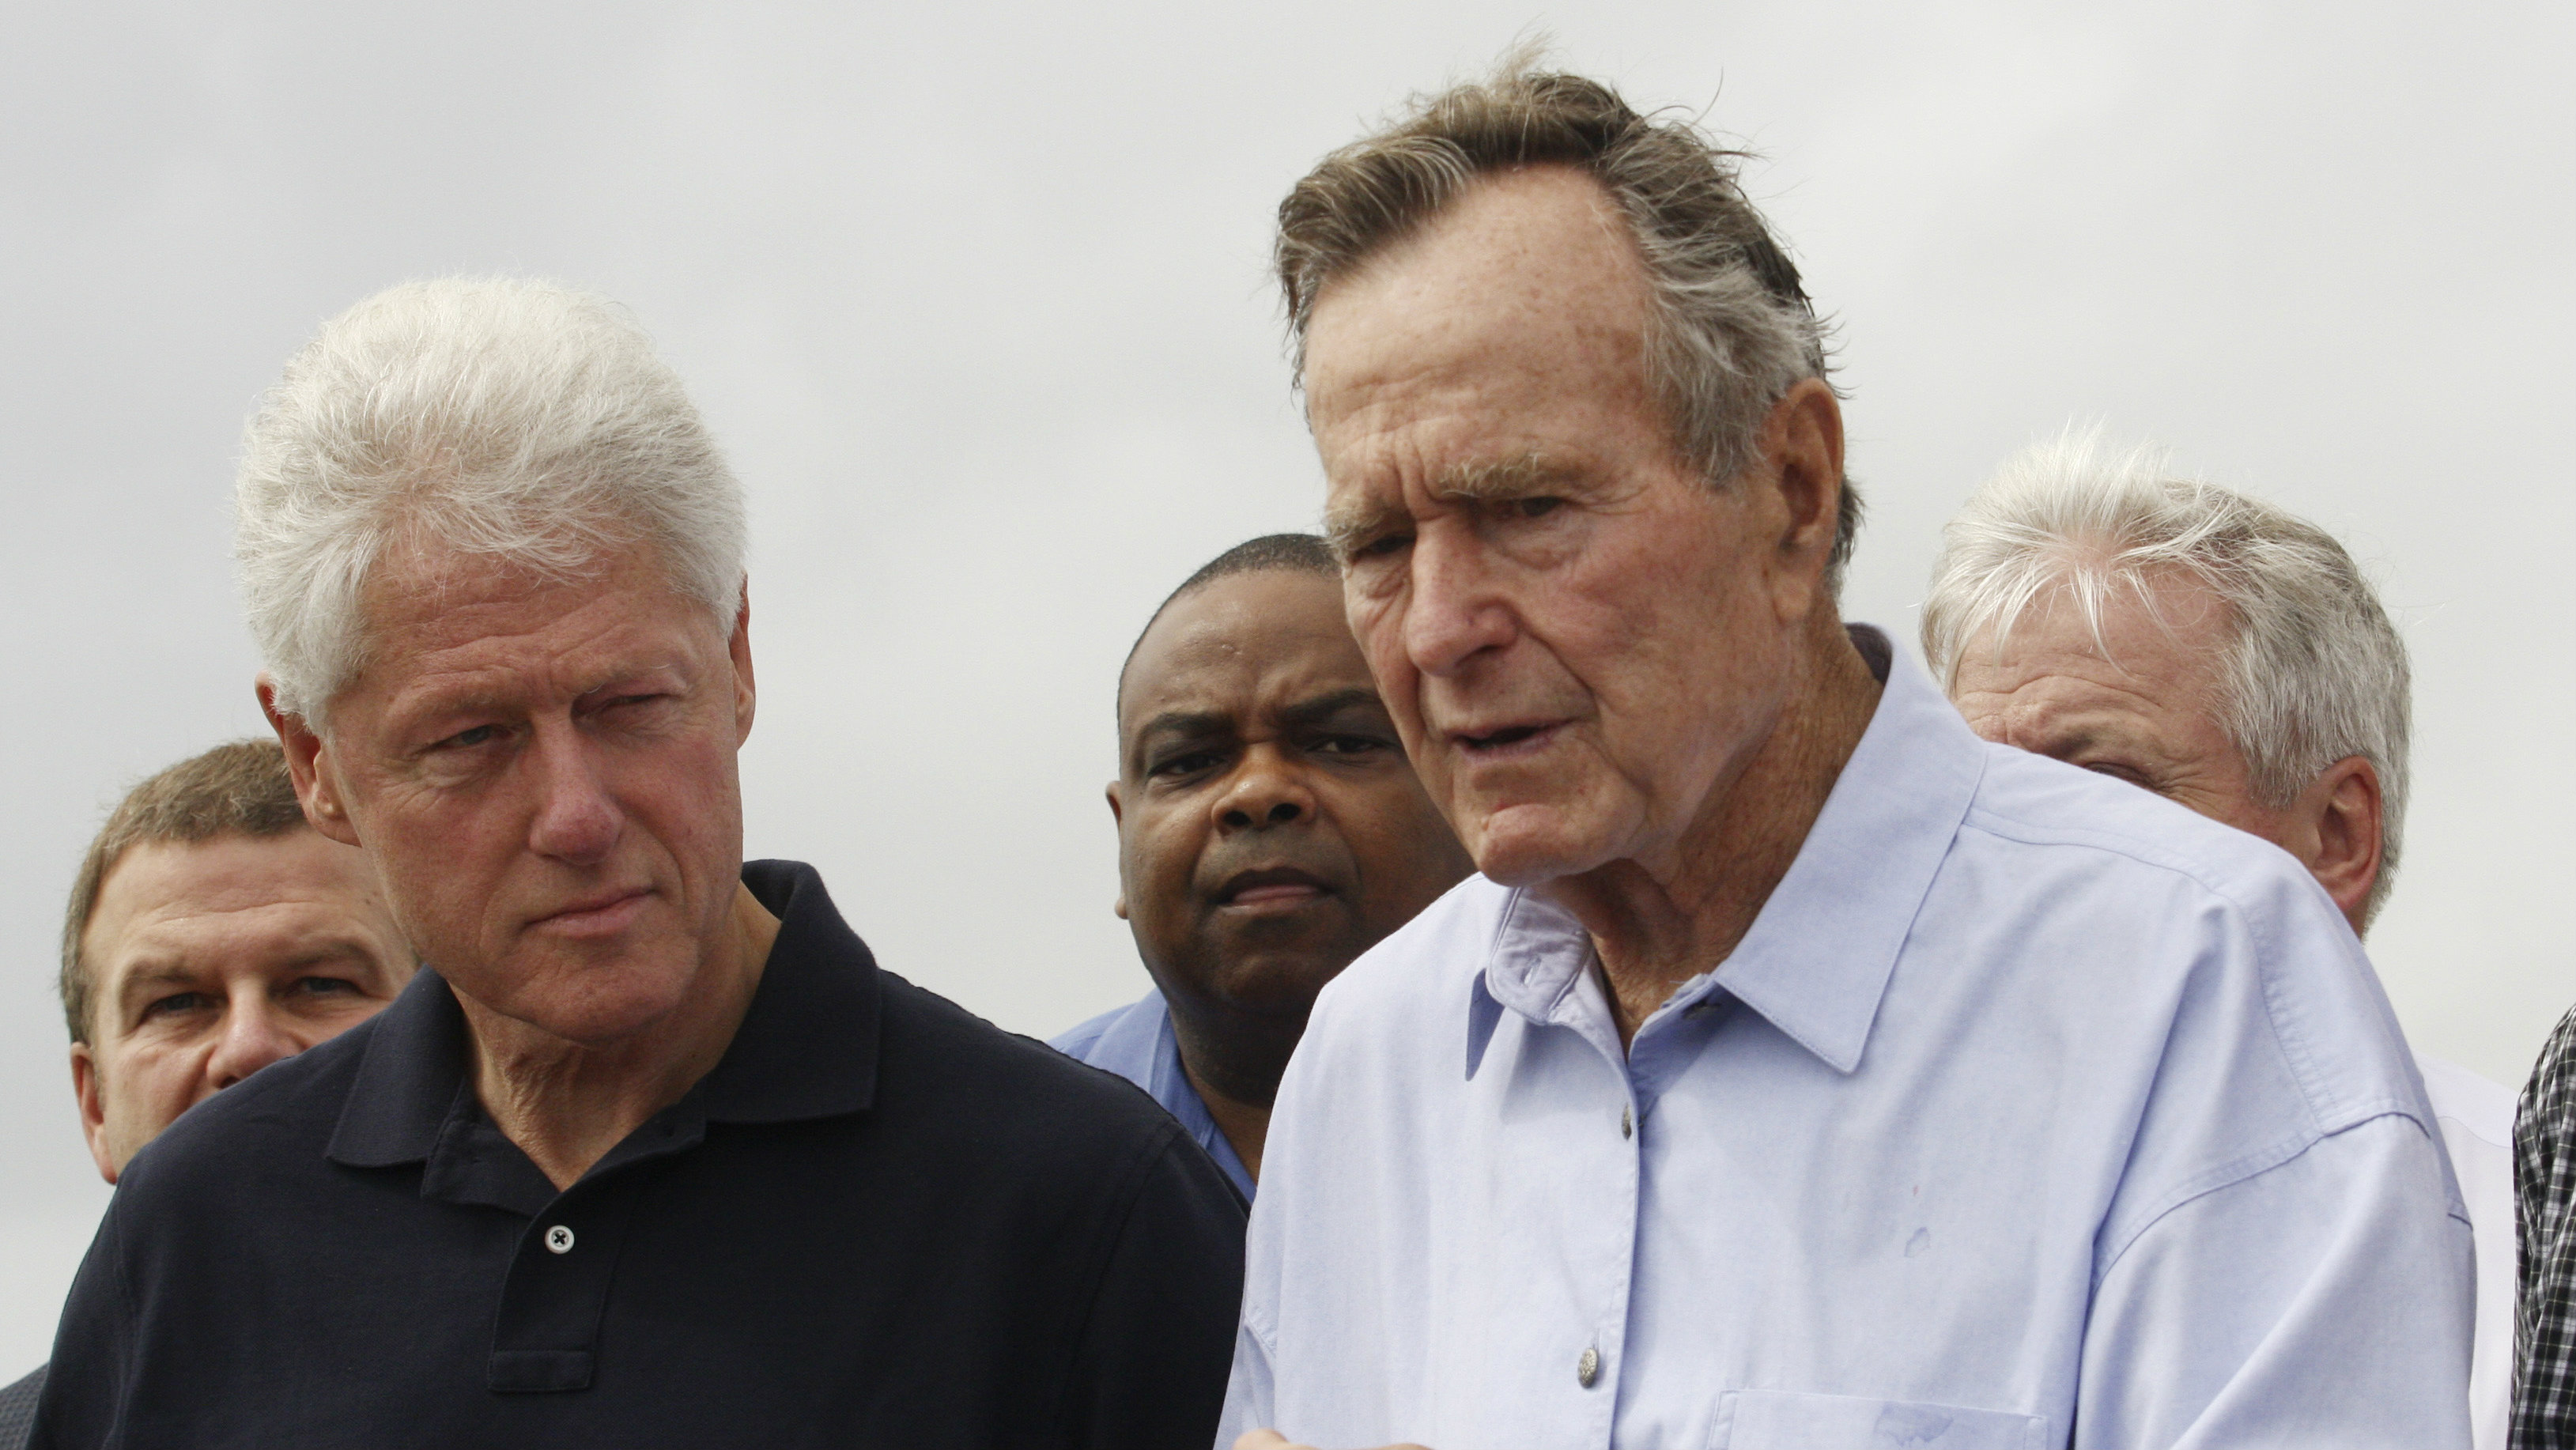 Former U.S. Presidents Bush and Clinton speak after the pair looked at damage from Hurricane Ike on the...